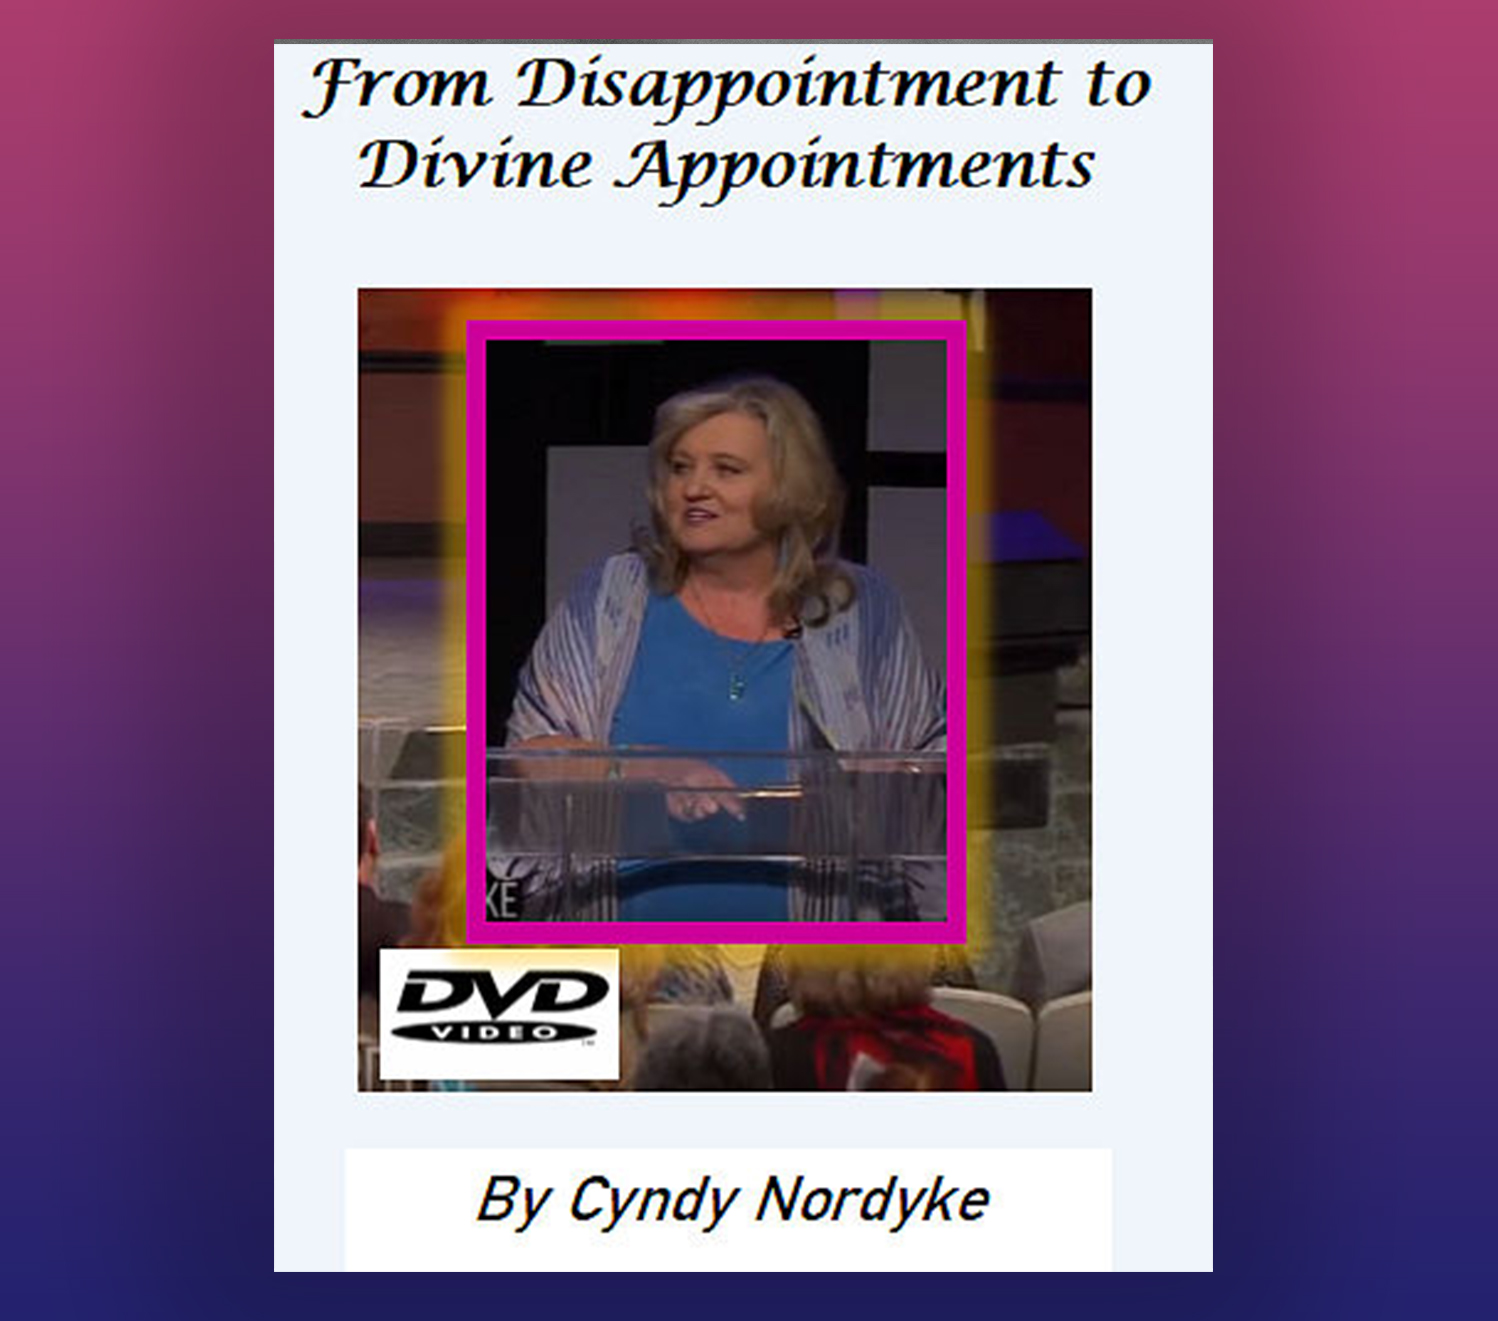 From Disappointment to Divine Appointment DVD By Cyndy Nordyke